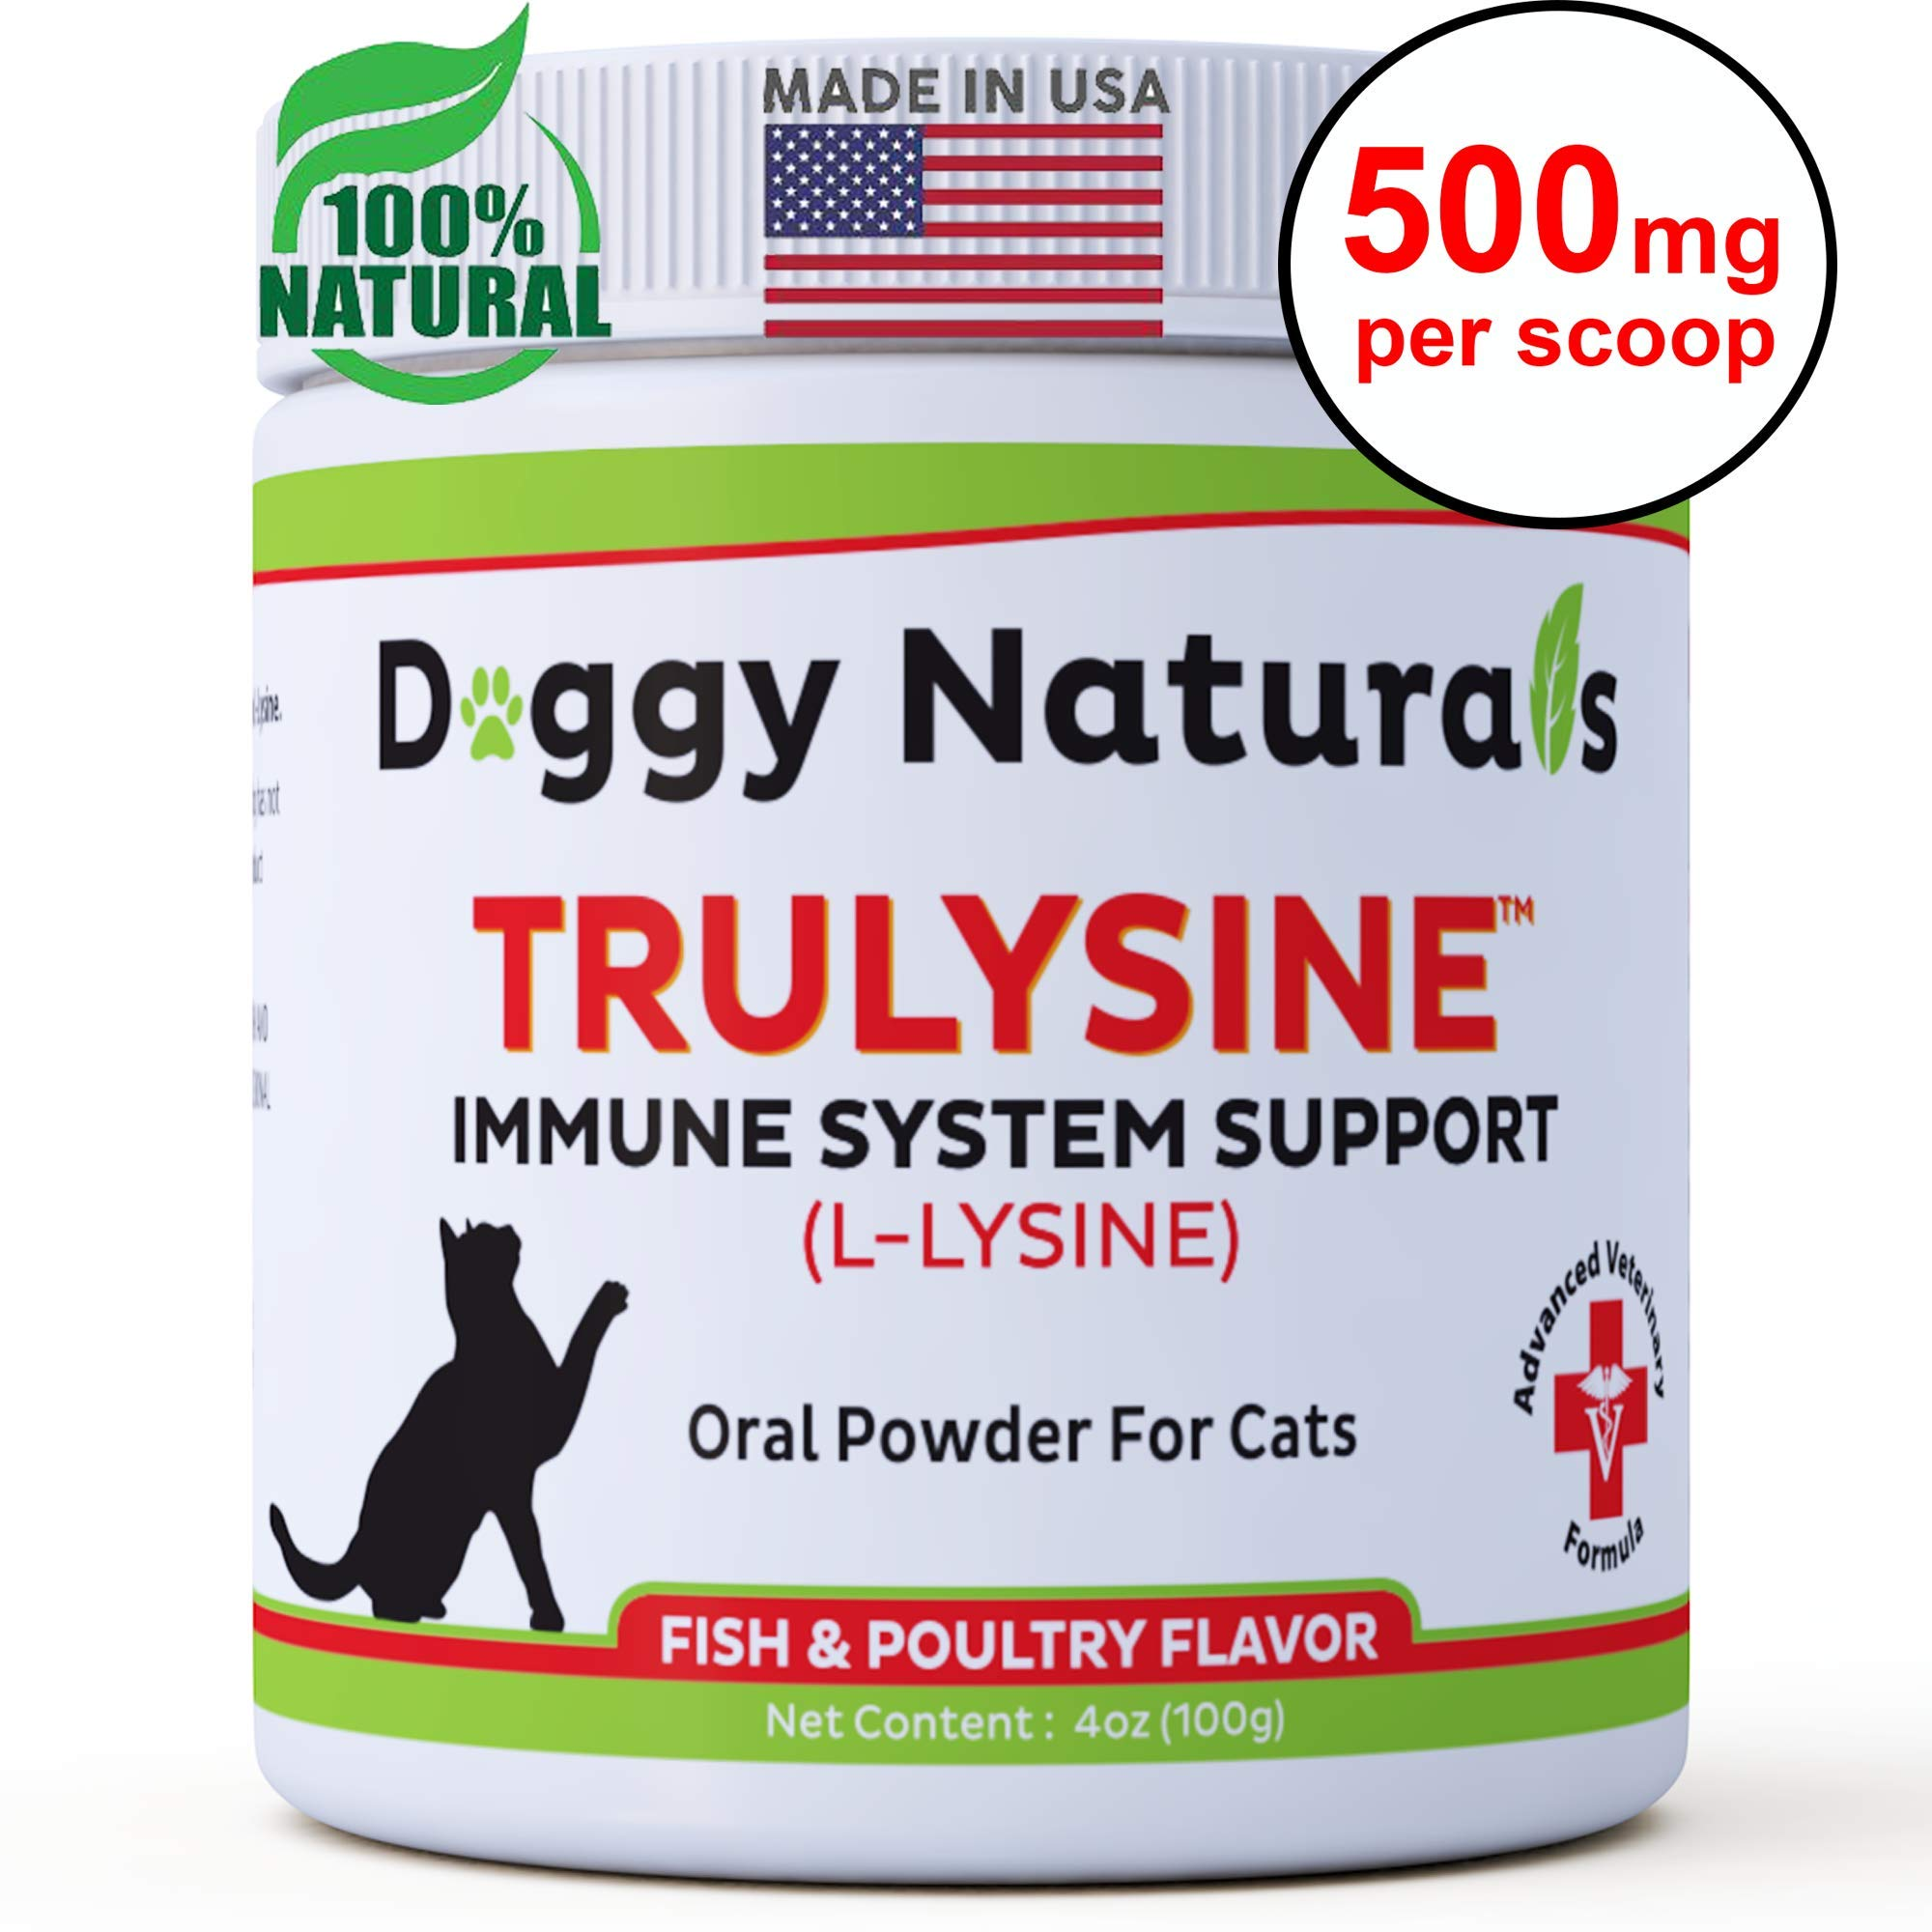 L Lysine for Cats Immune Viralys Support Oral Granule Powder - 500 mg per serving ( 4oz) - Cats & Kittens, Immune Health, Sneezing, Runny Nose,Squinting Palatable Fish & Poultry Flavor L Lysine Powder by Pet Health Pharma